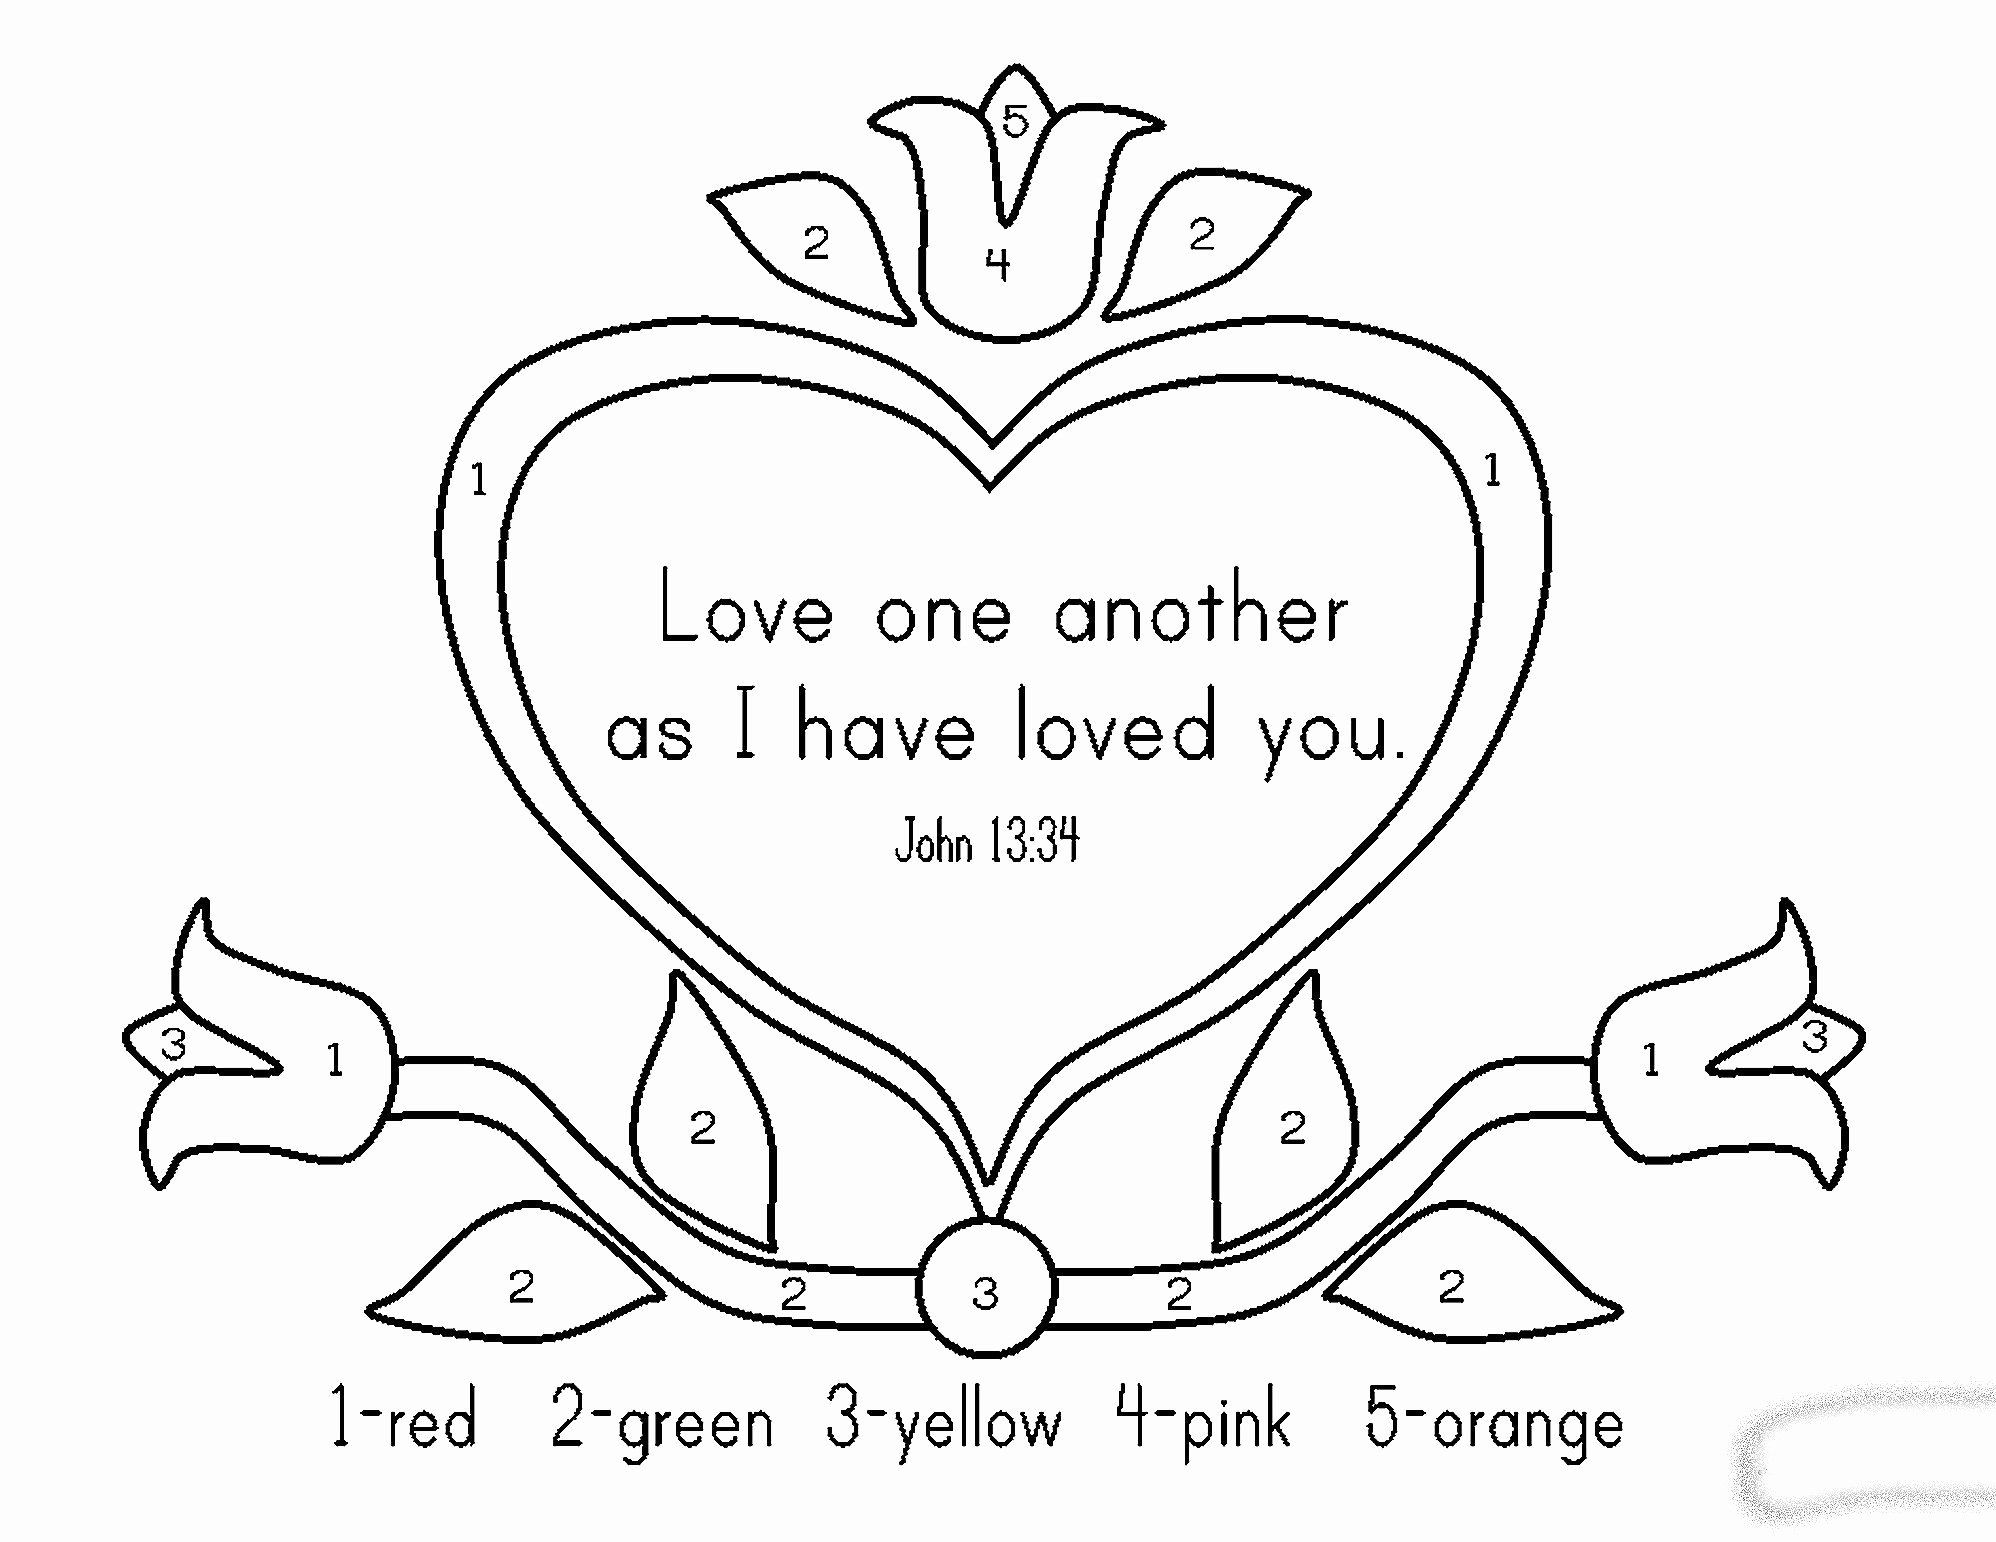 love one another coloring page love one another coloring pages lds colorpaintsco page one coloring another love